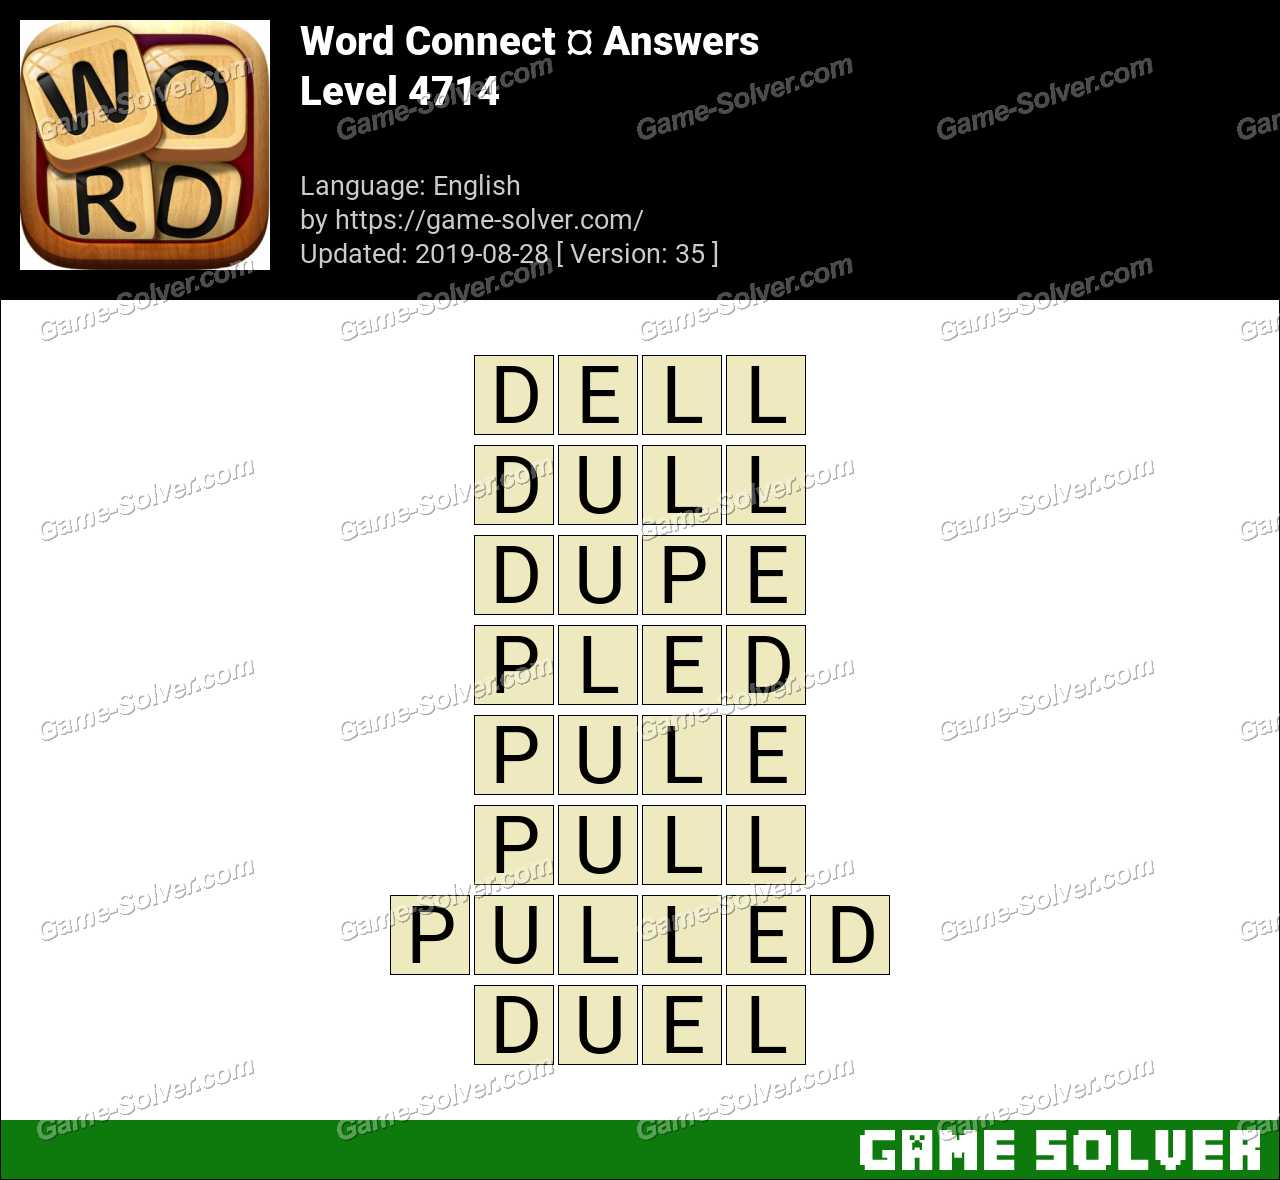 Word Connect Level 4714 Answers